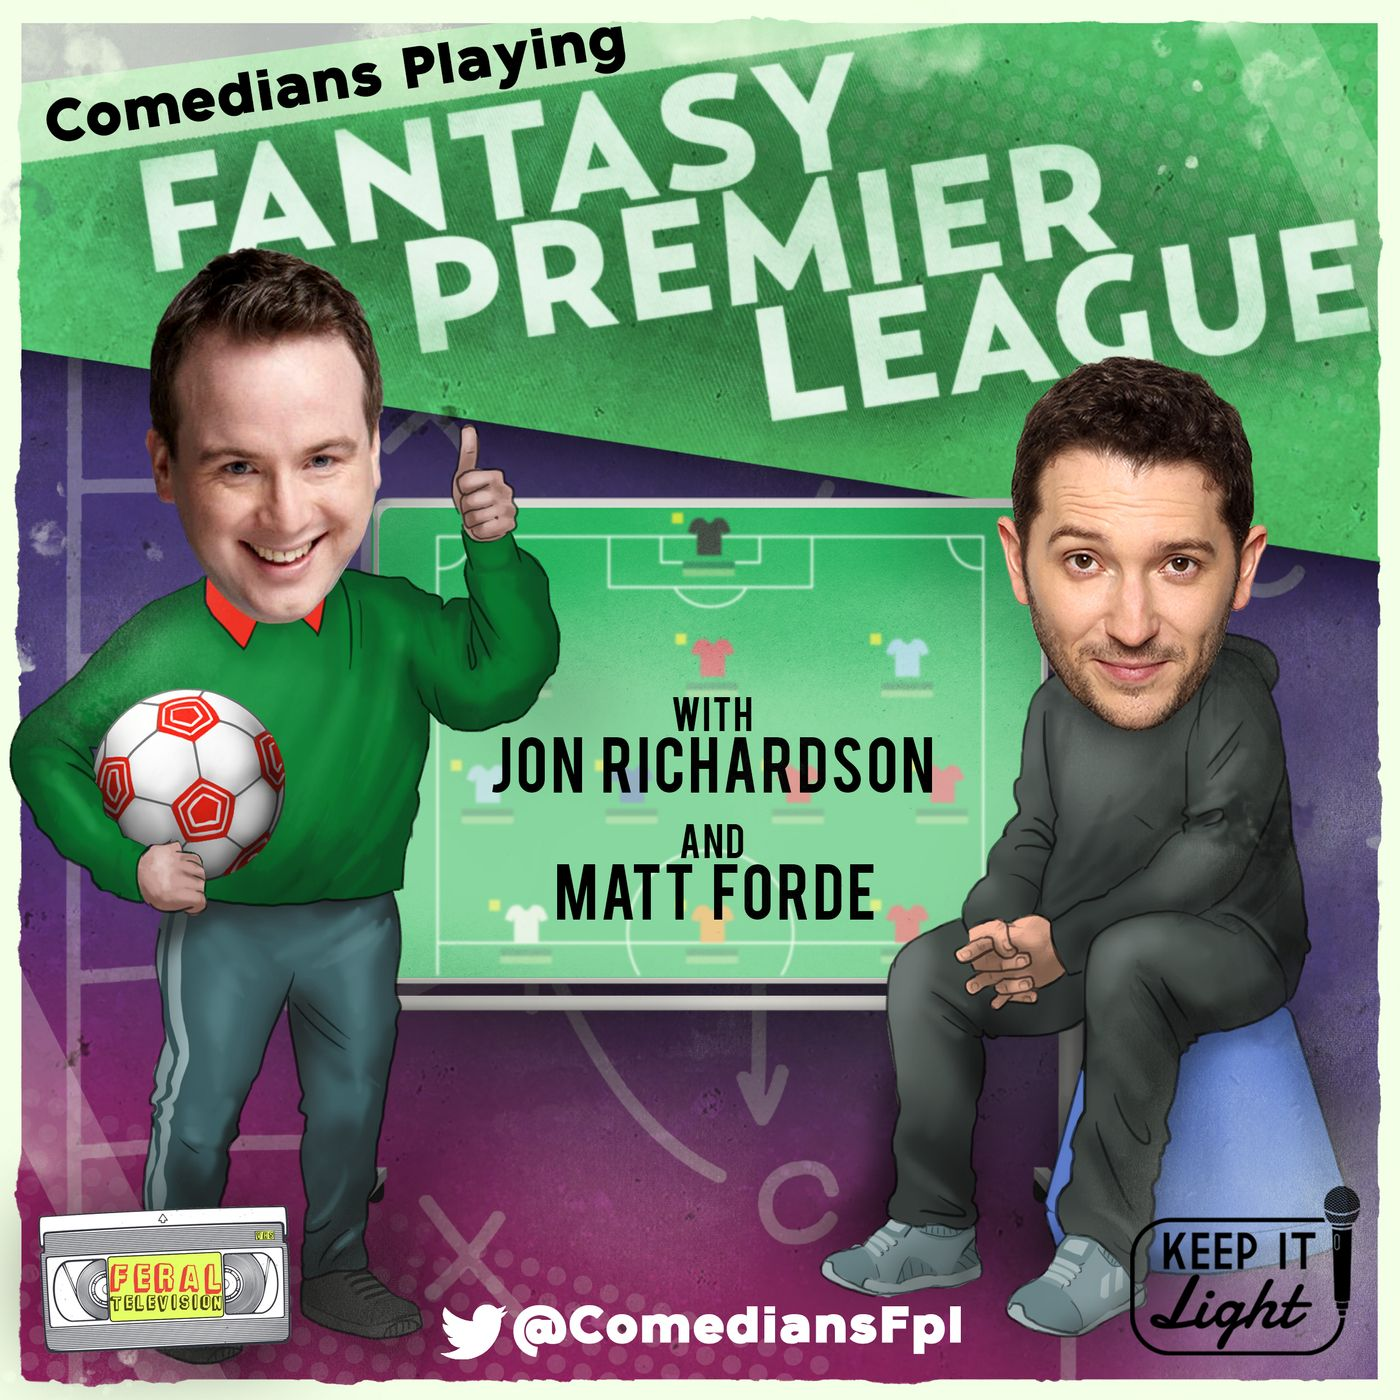 S1 EP 11 : Nathon Caton and the end of 'The Curse of Matt Forde?'